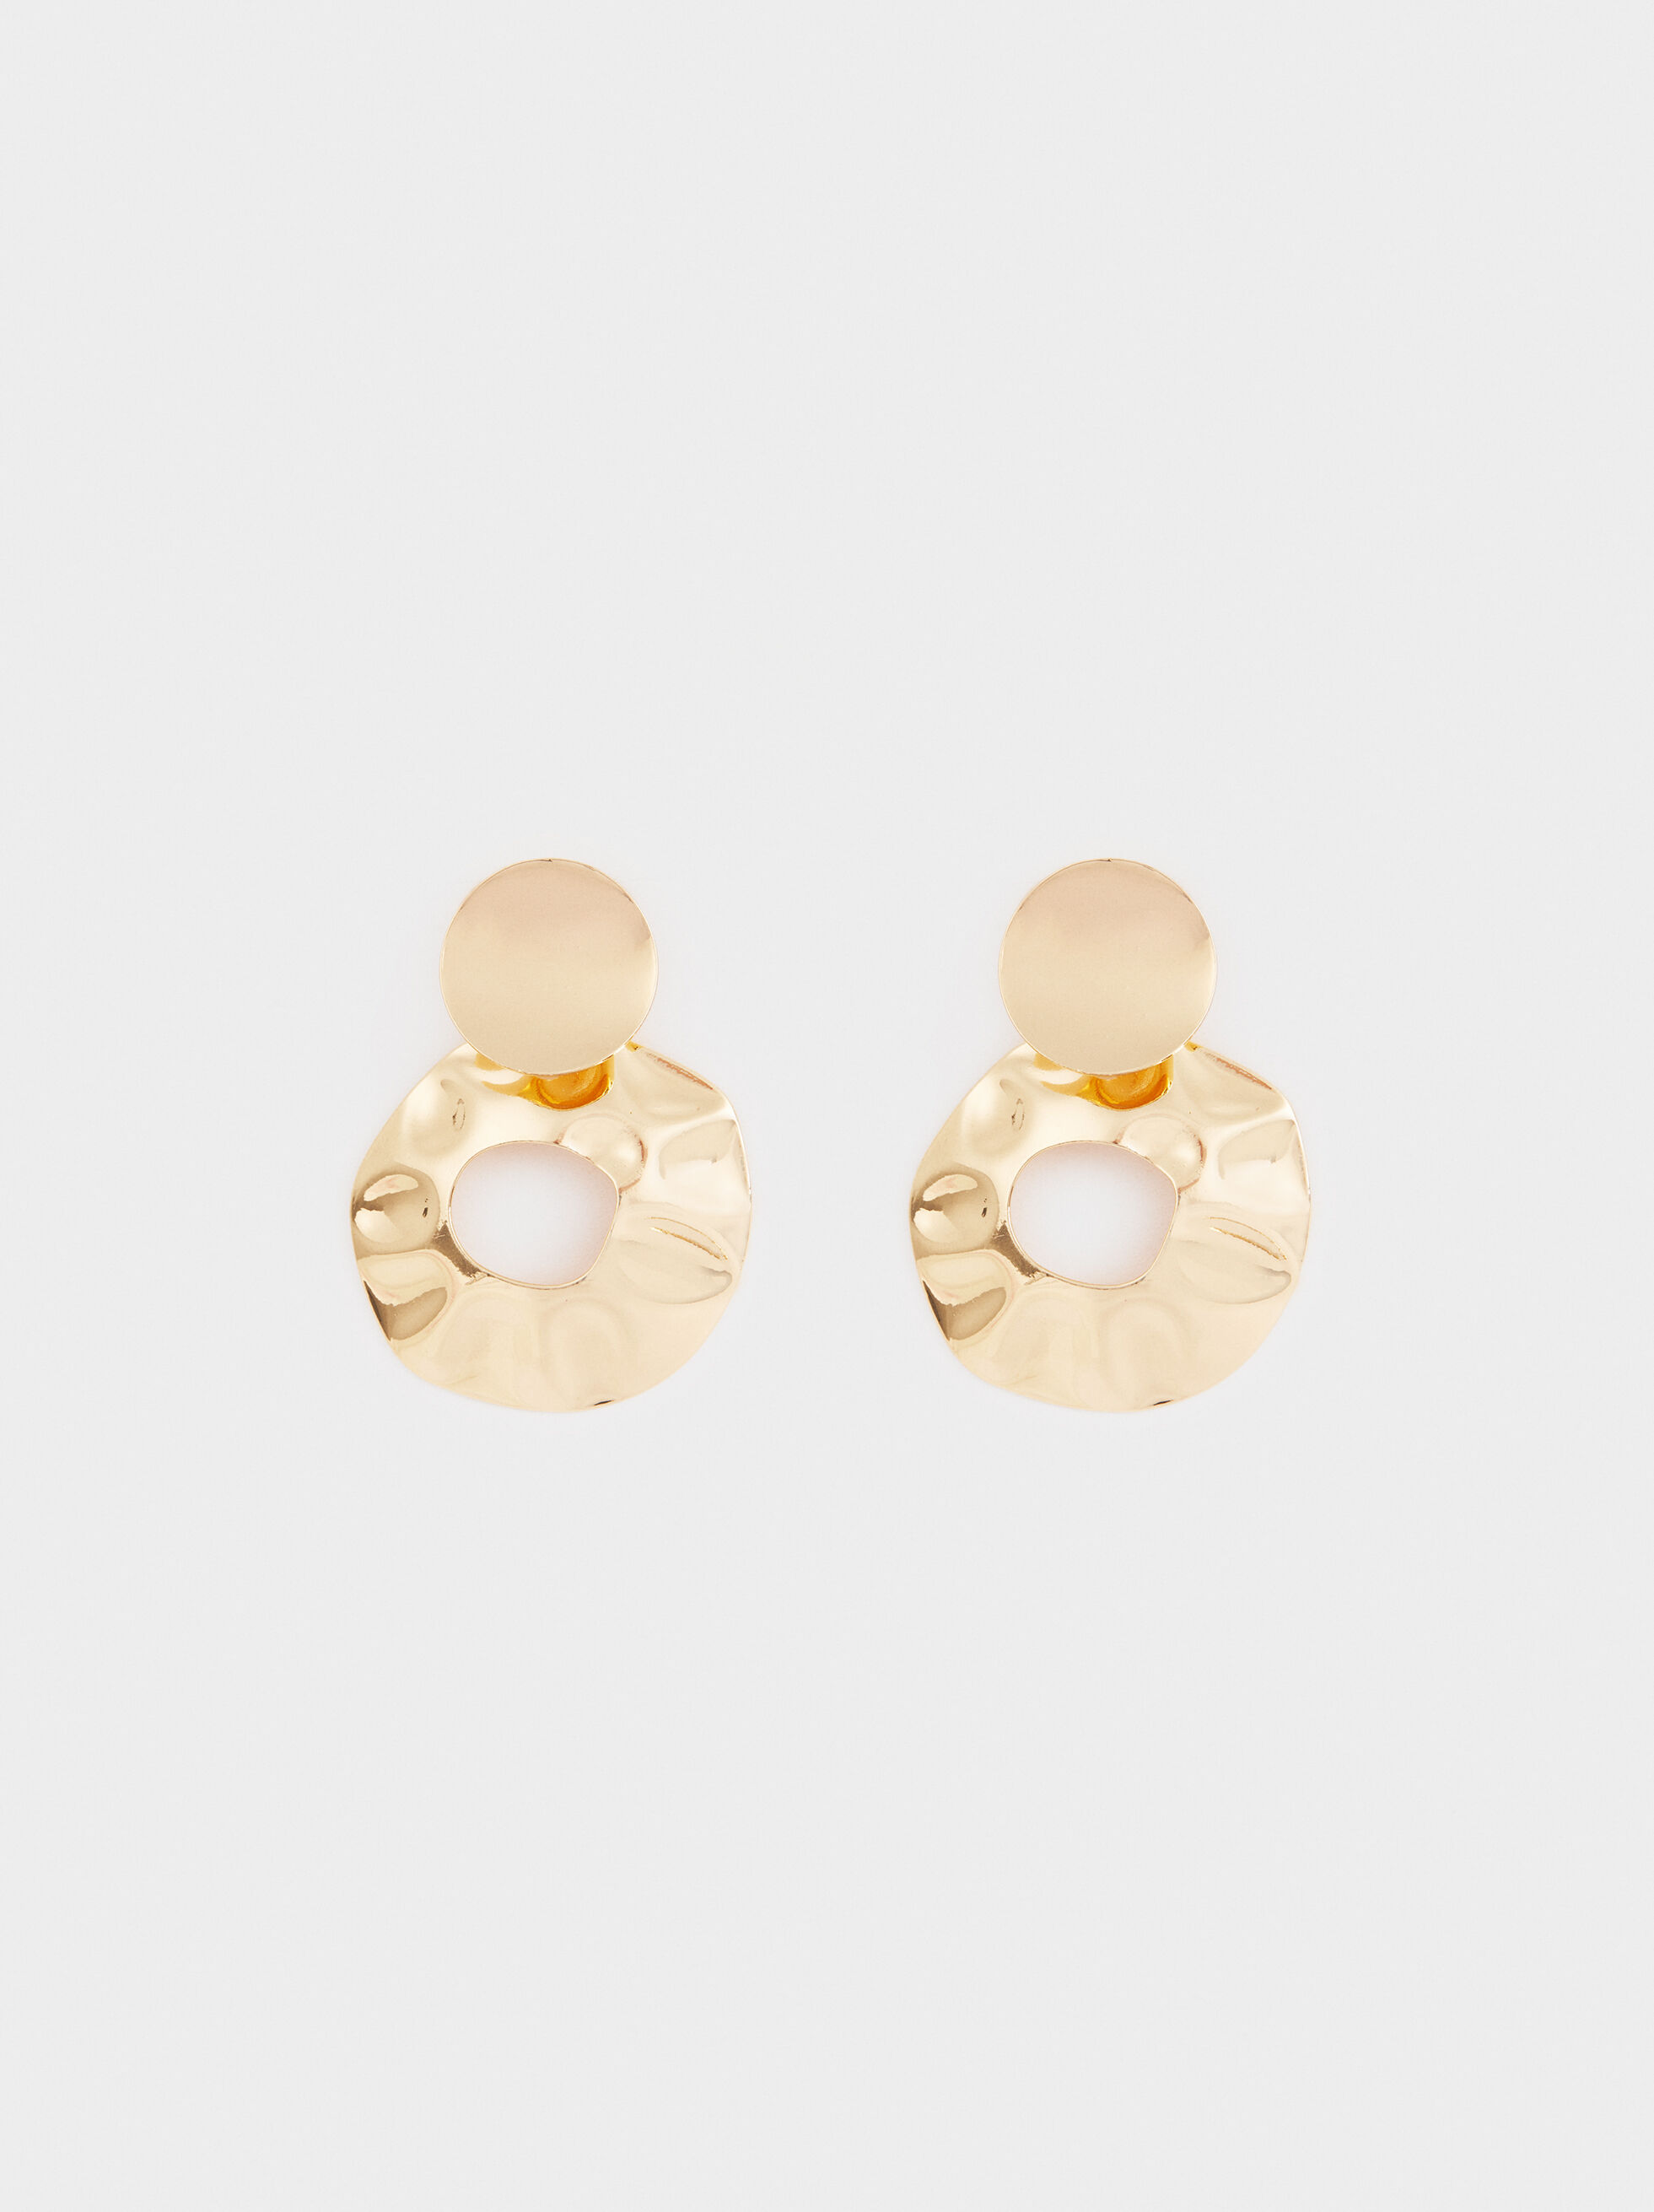 Medium Gold Circular Earrings, , hi-res